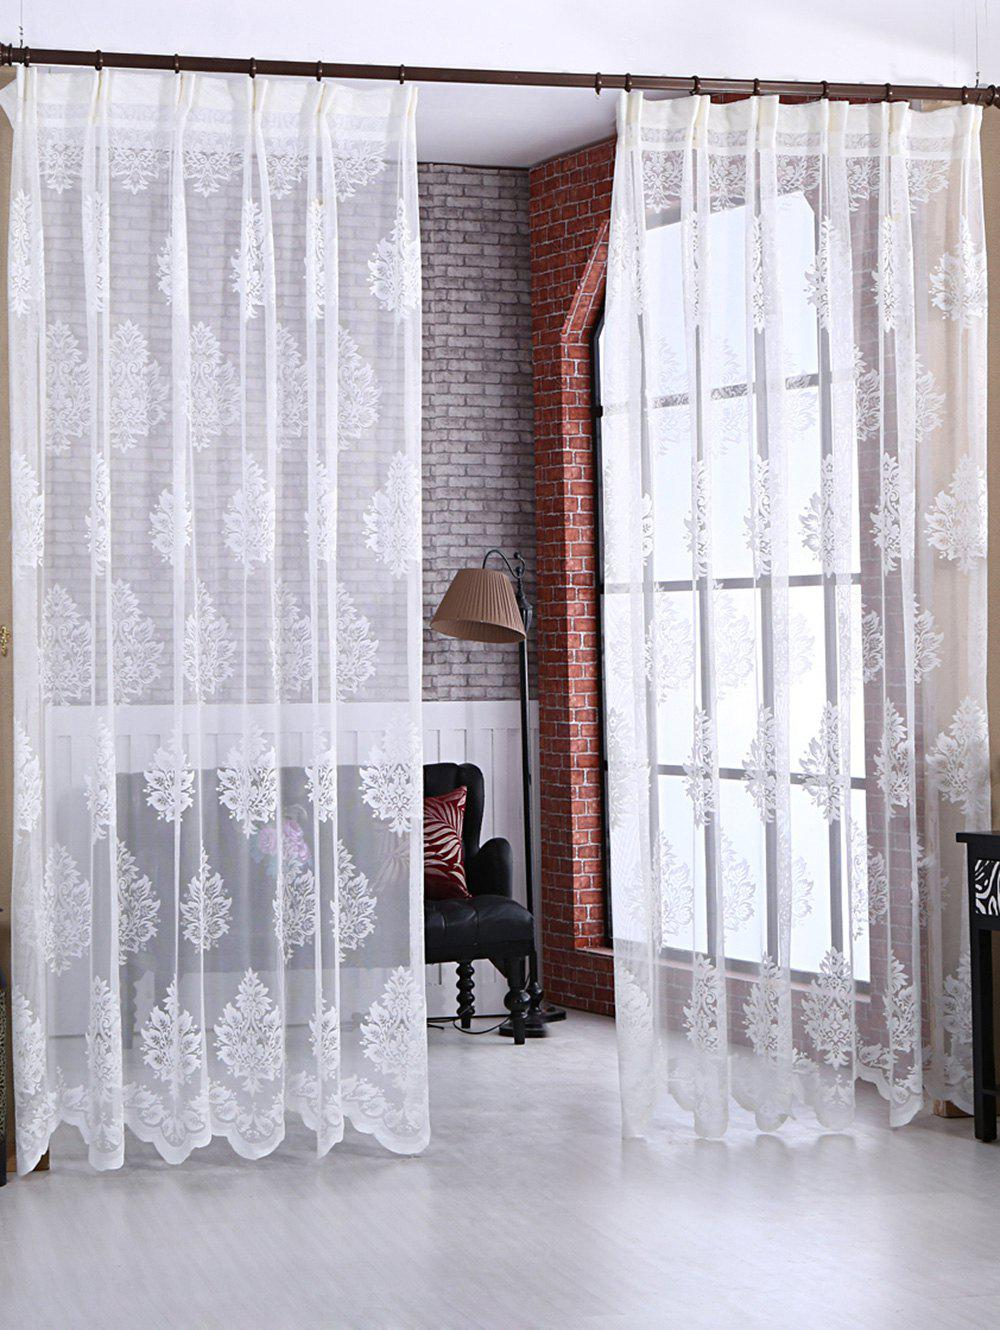 Latest Floral Sheer Tulle Curtain Door Window Balcony Screen